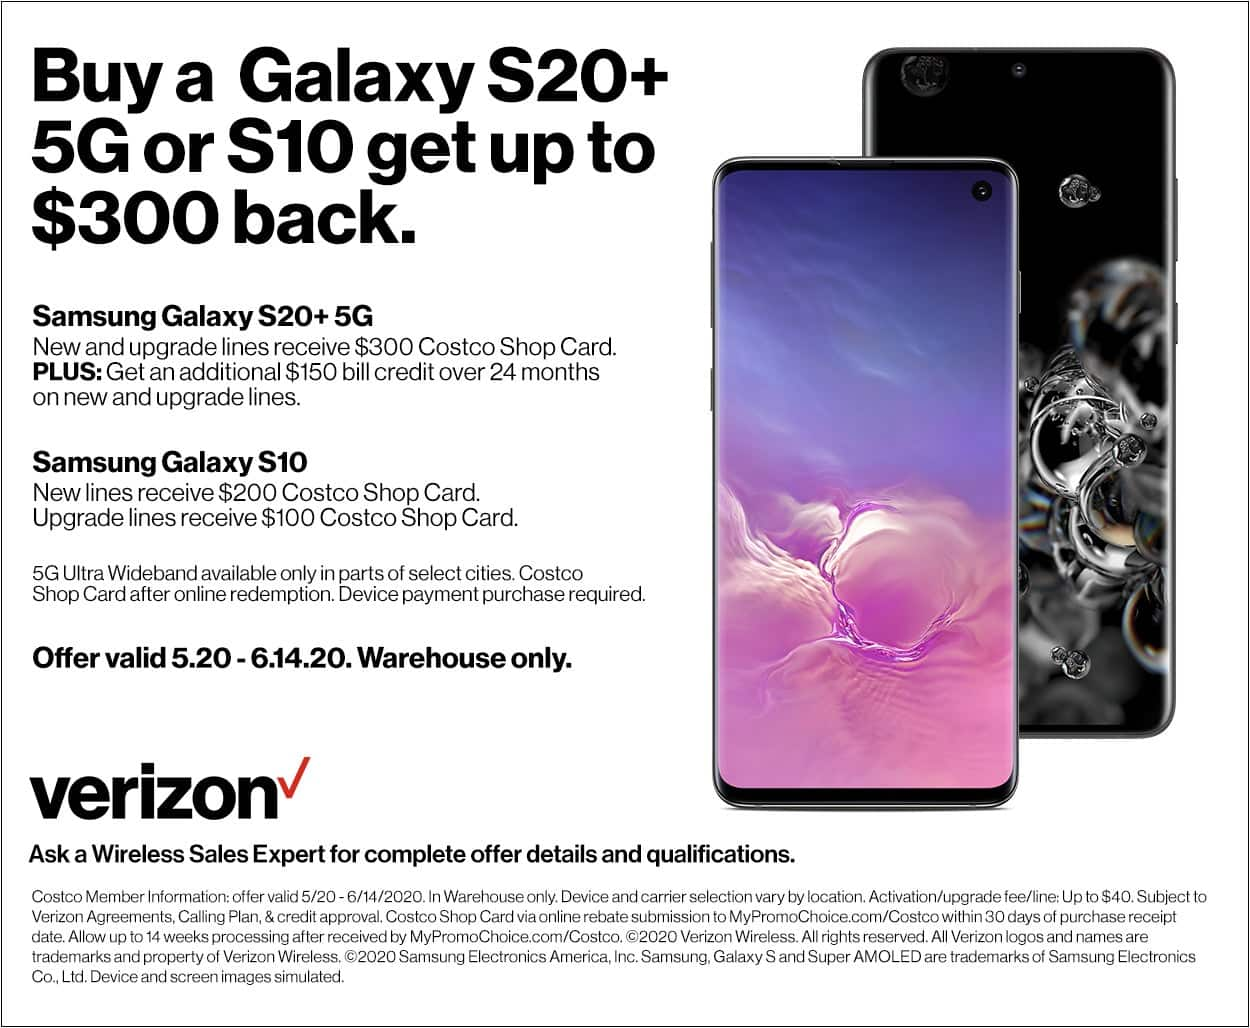 Costco In-Store Offer: Verizon Samsung Galaxy S20+ 5G for $689.99 after $300 Card and $150 Bill Credit w/ Purchase (New + Upgrade Lines) $689.99